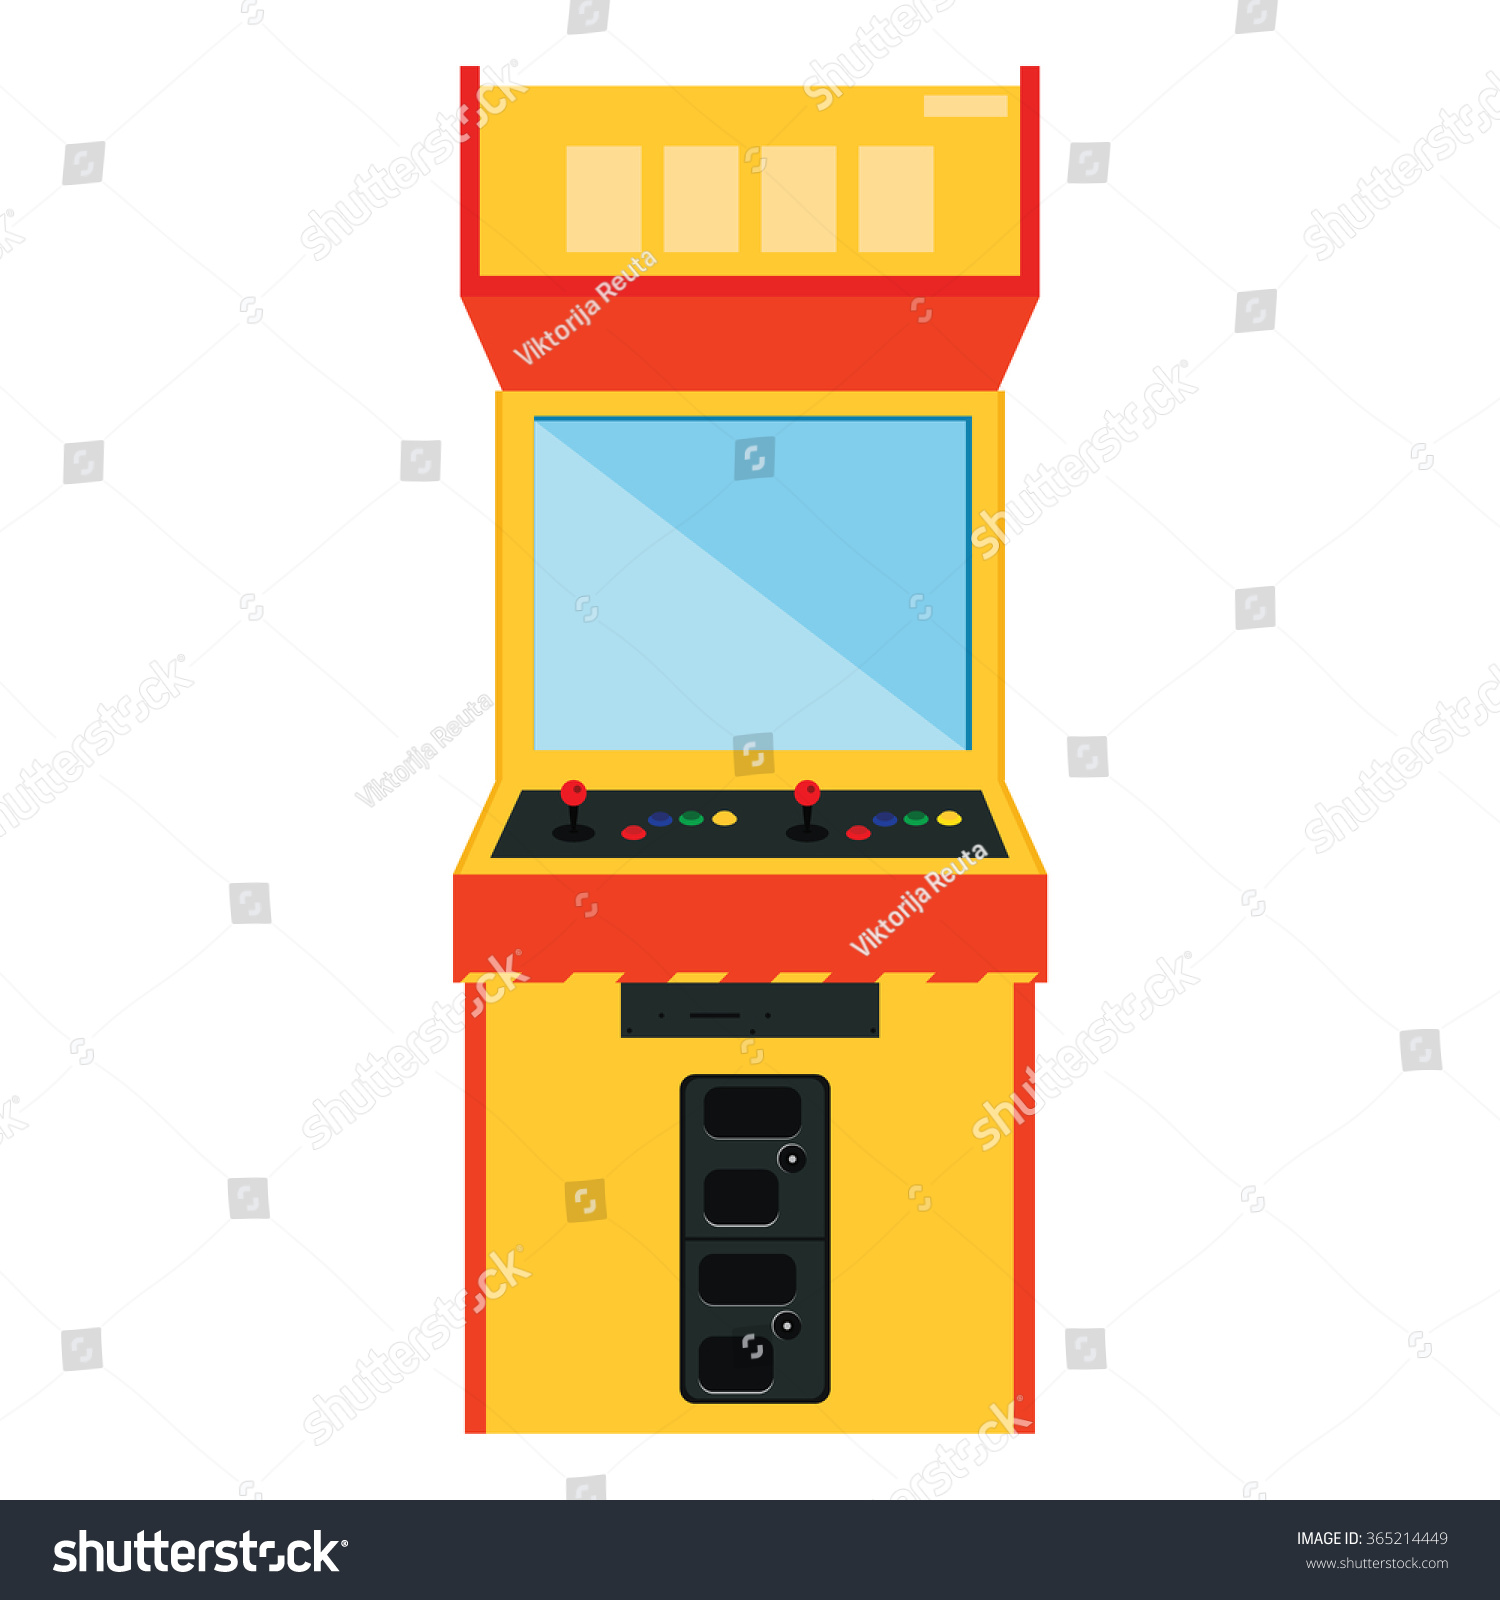 videogame machine